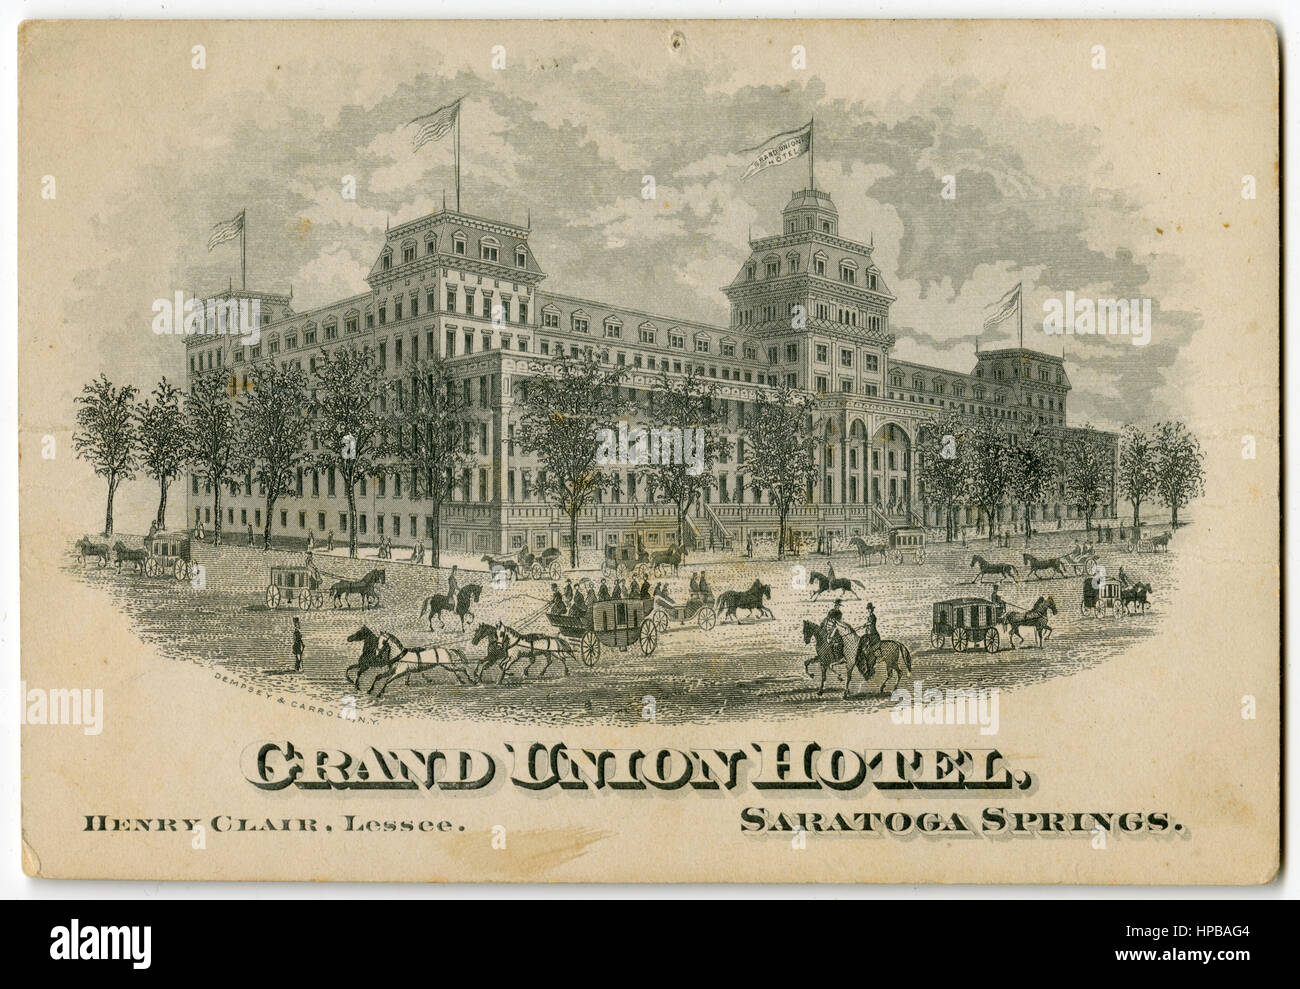 Antique c1890 Victorian trade card for Grand Union Hotel in Saratoga Springs, New York. - Stock Image